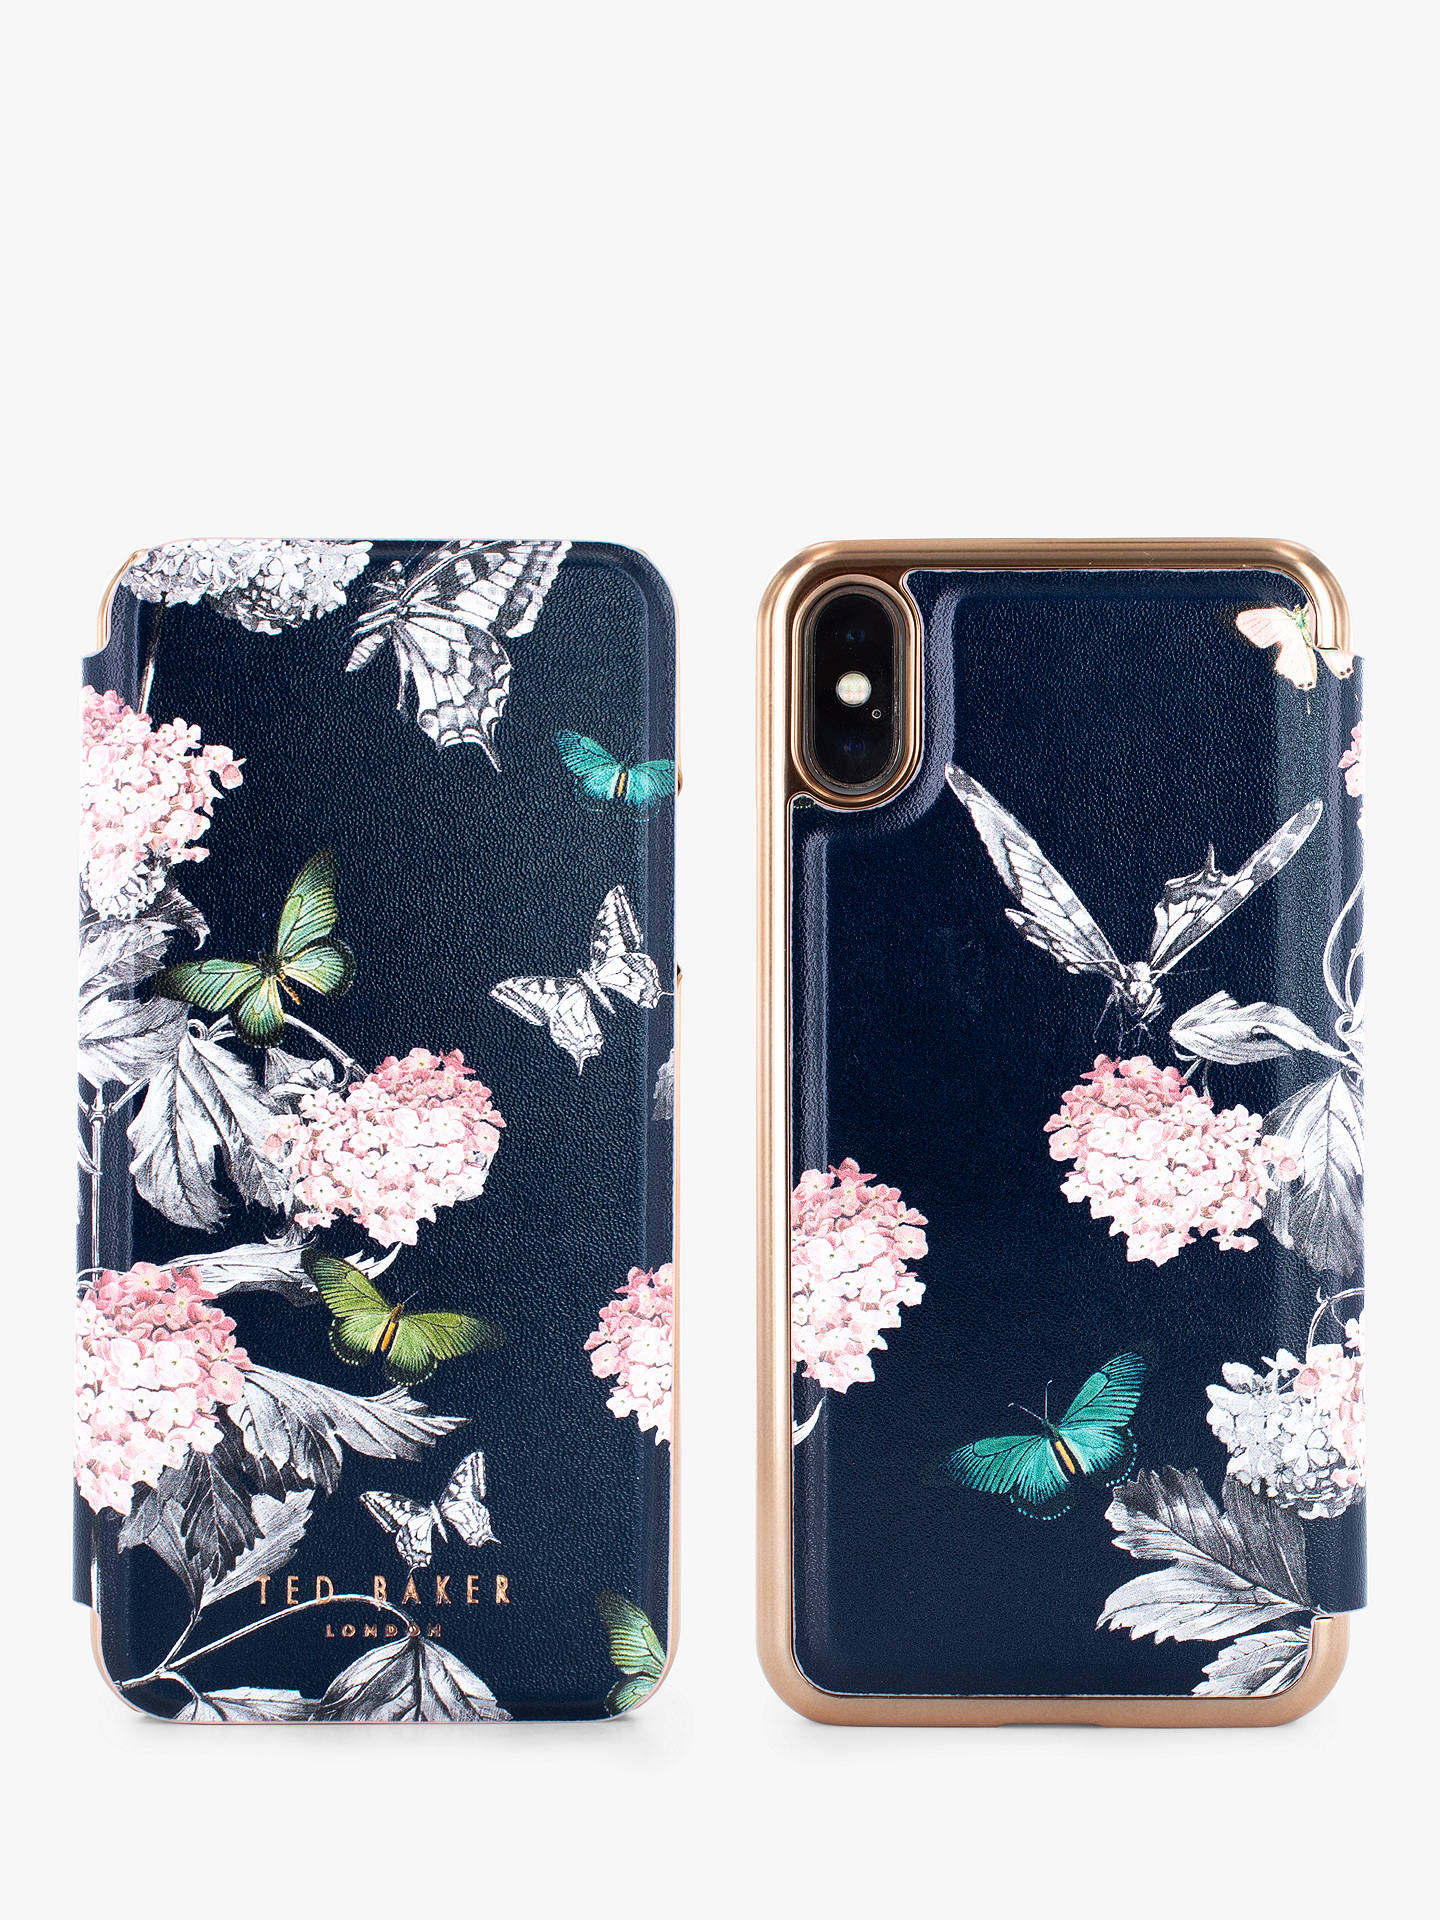 big sale 4f0e2 da8bd Ted Baker Moondance Folio Case for iPhone X